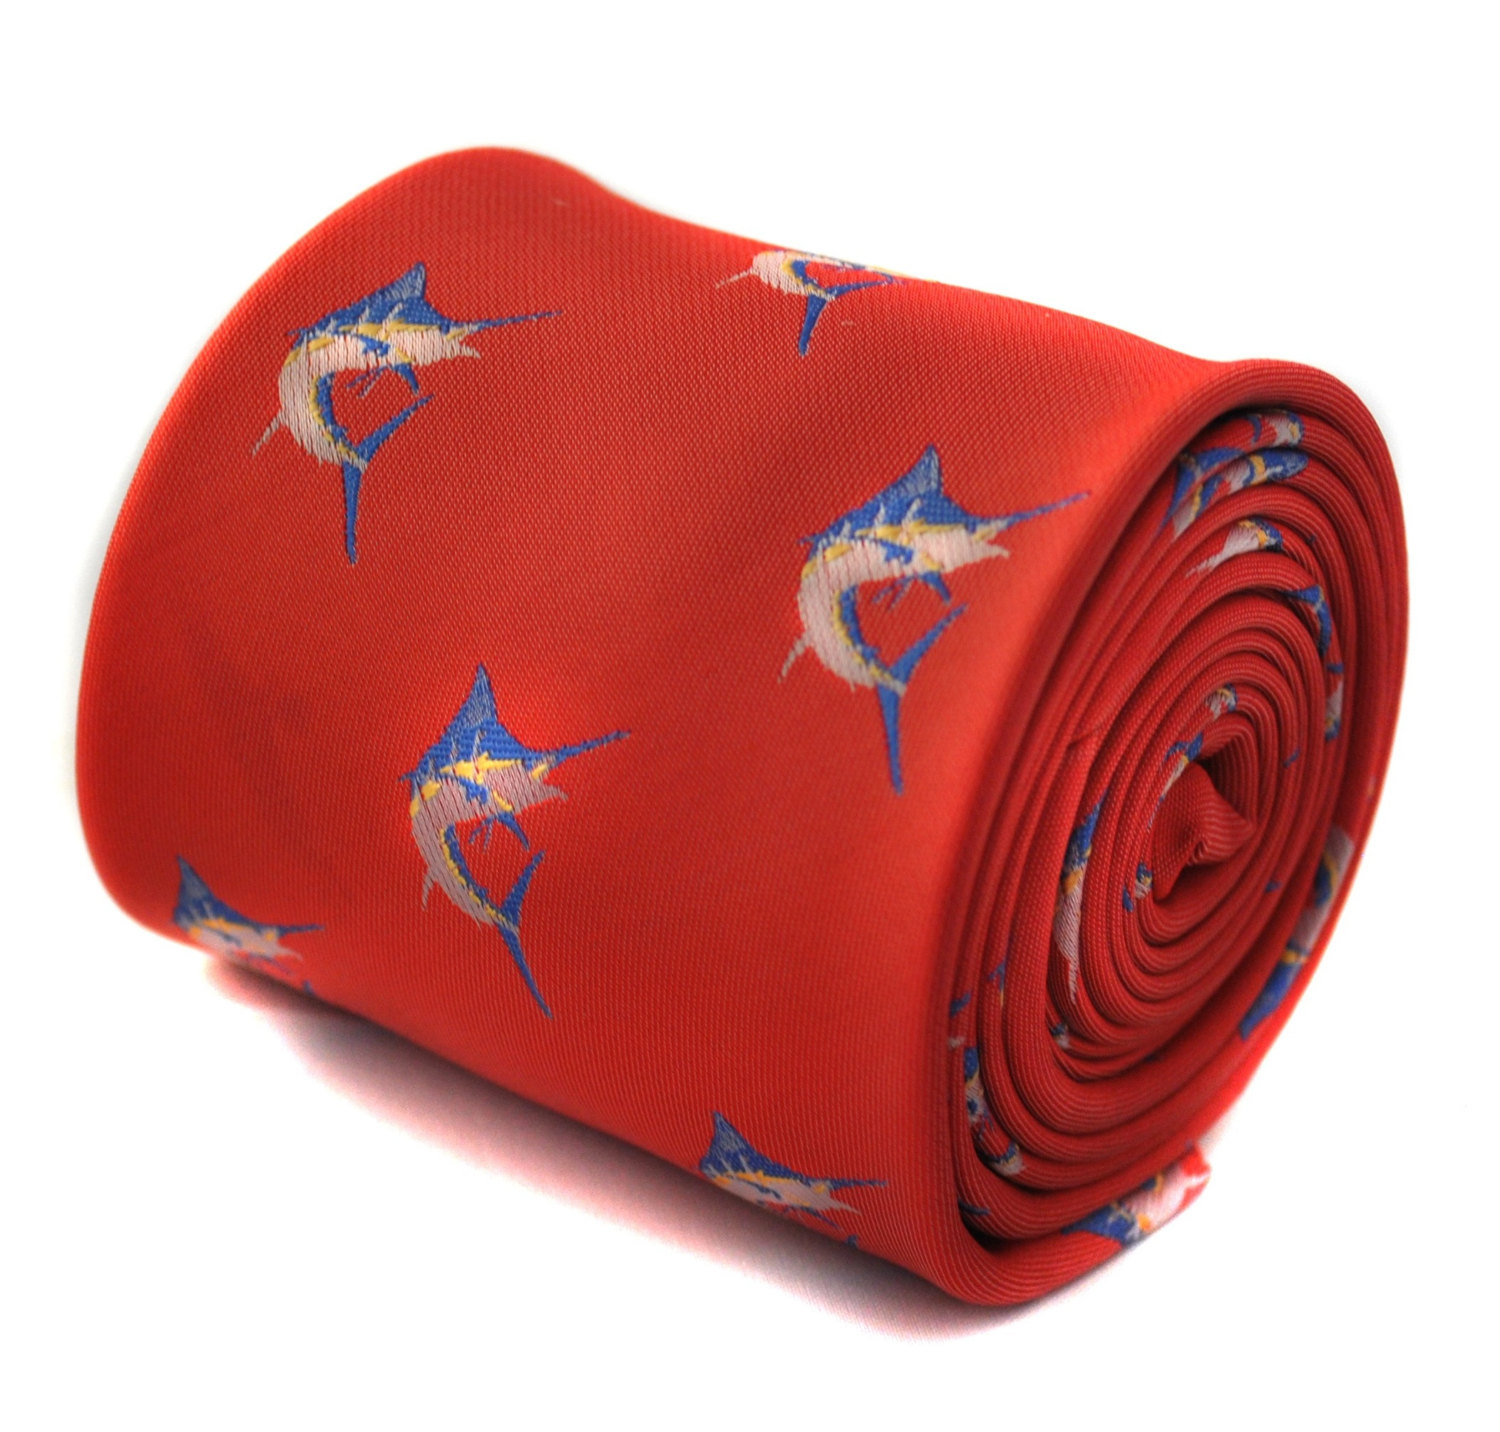 red tie with swordfish embroidered design with signature floral design to the re